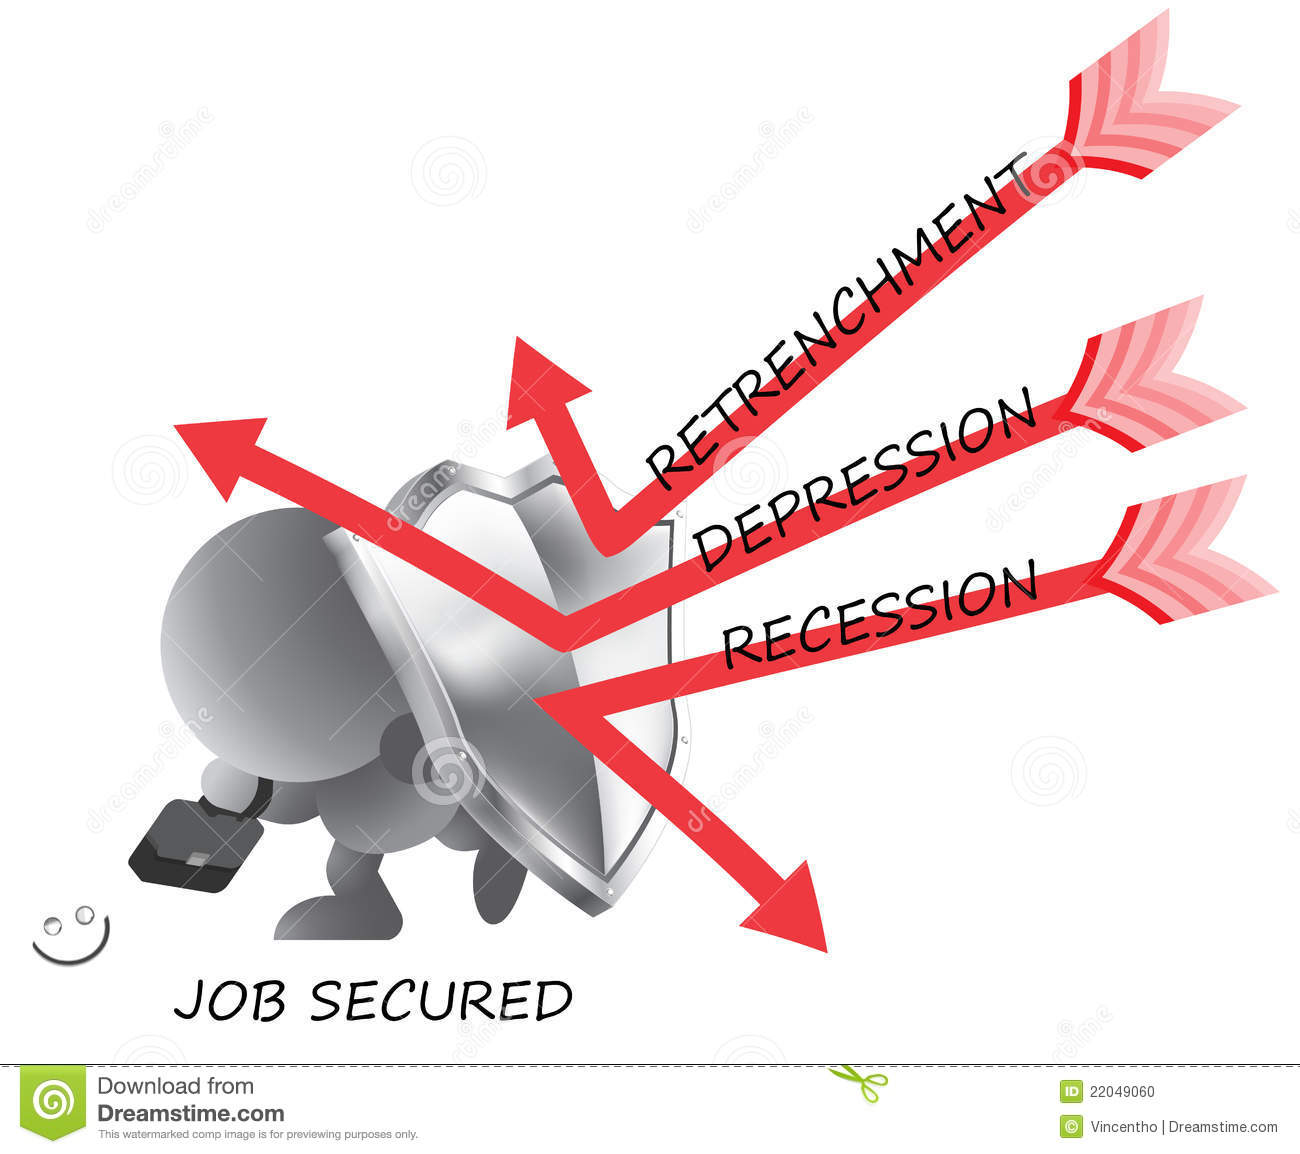 The Importance of Obtaining Job Security